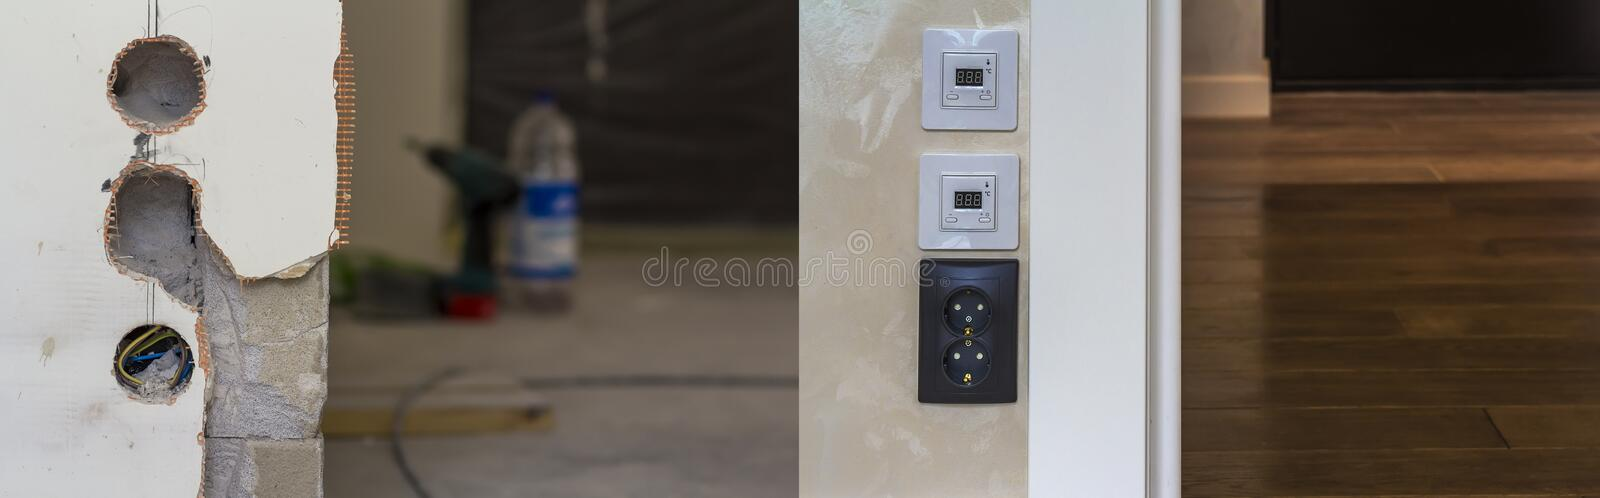 Electric socket and warm floor heater control panels on the wall royalty free stock images